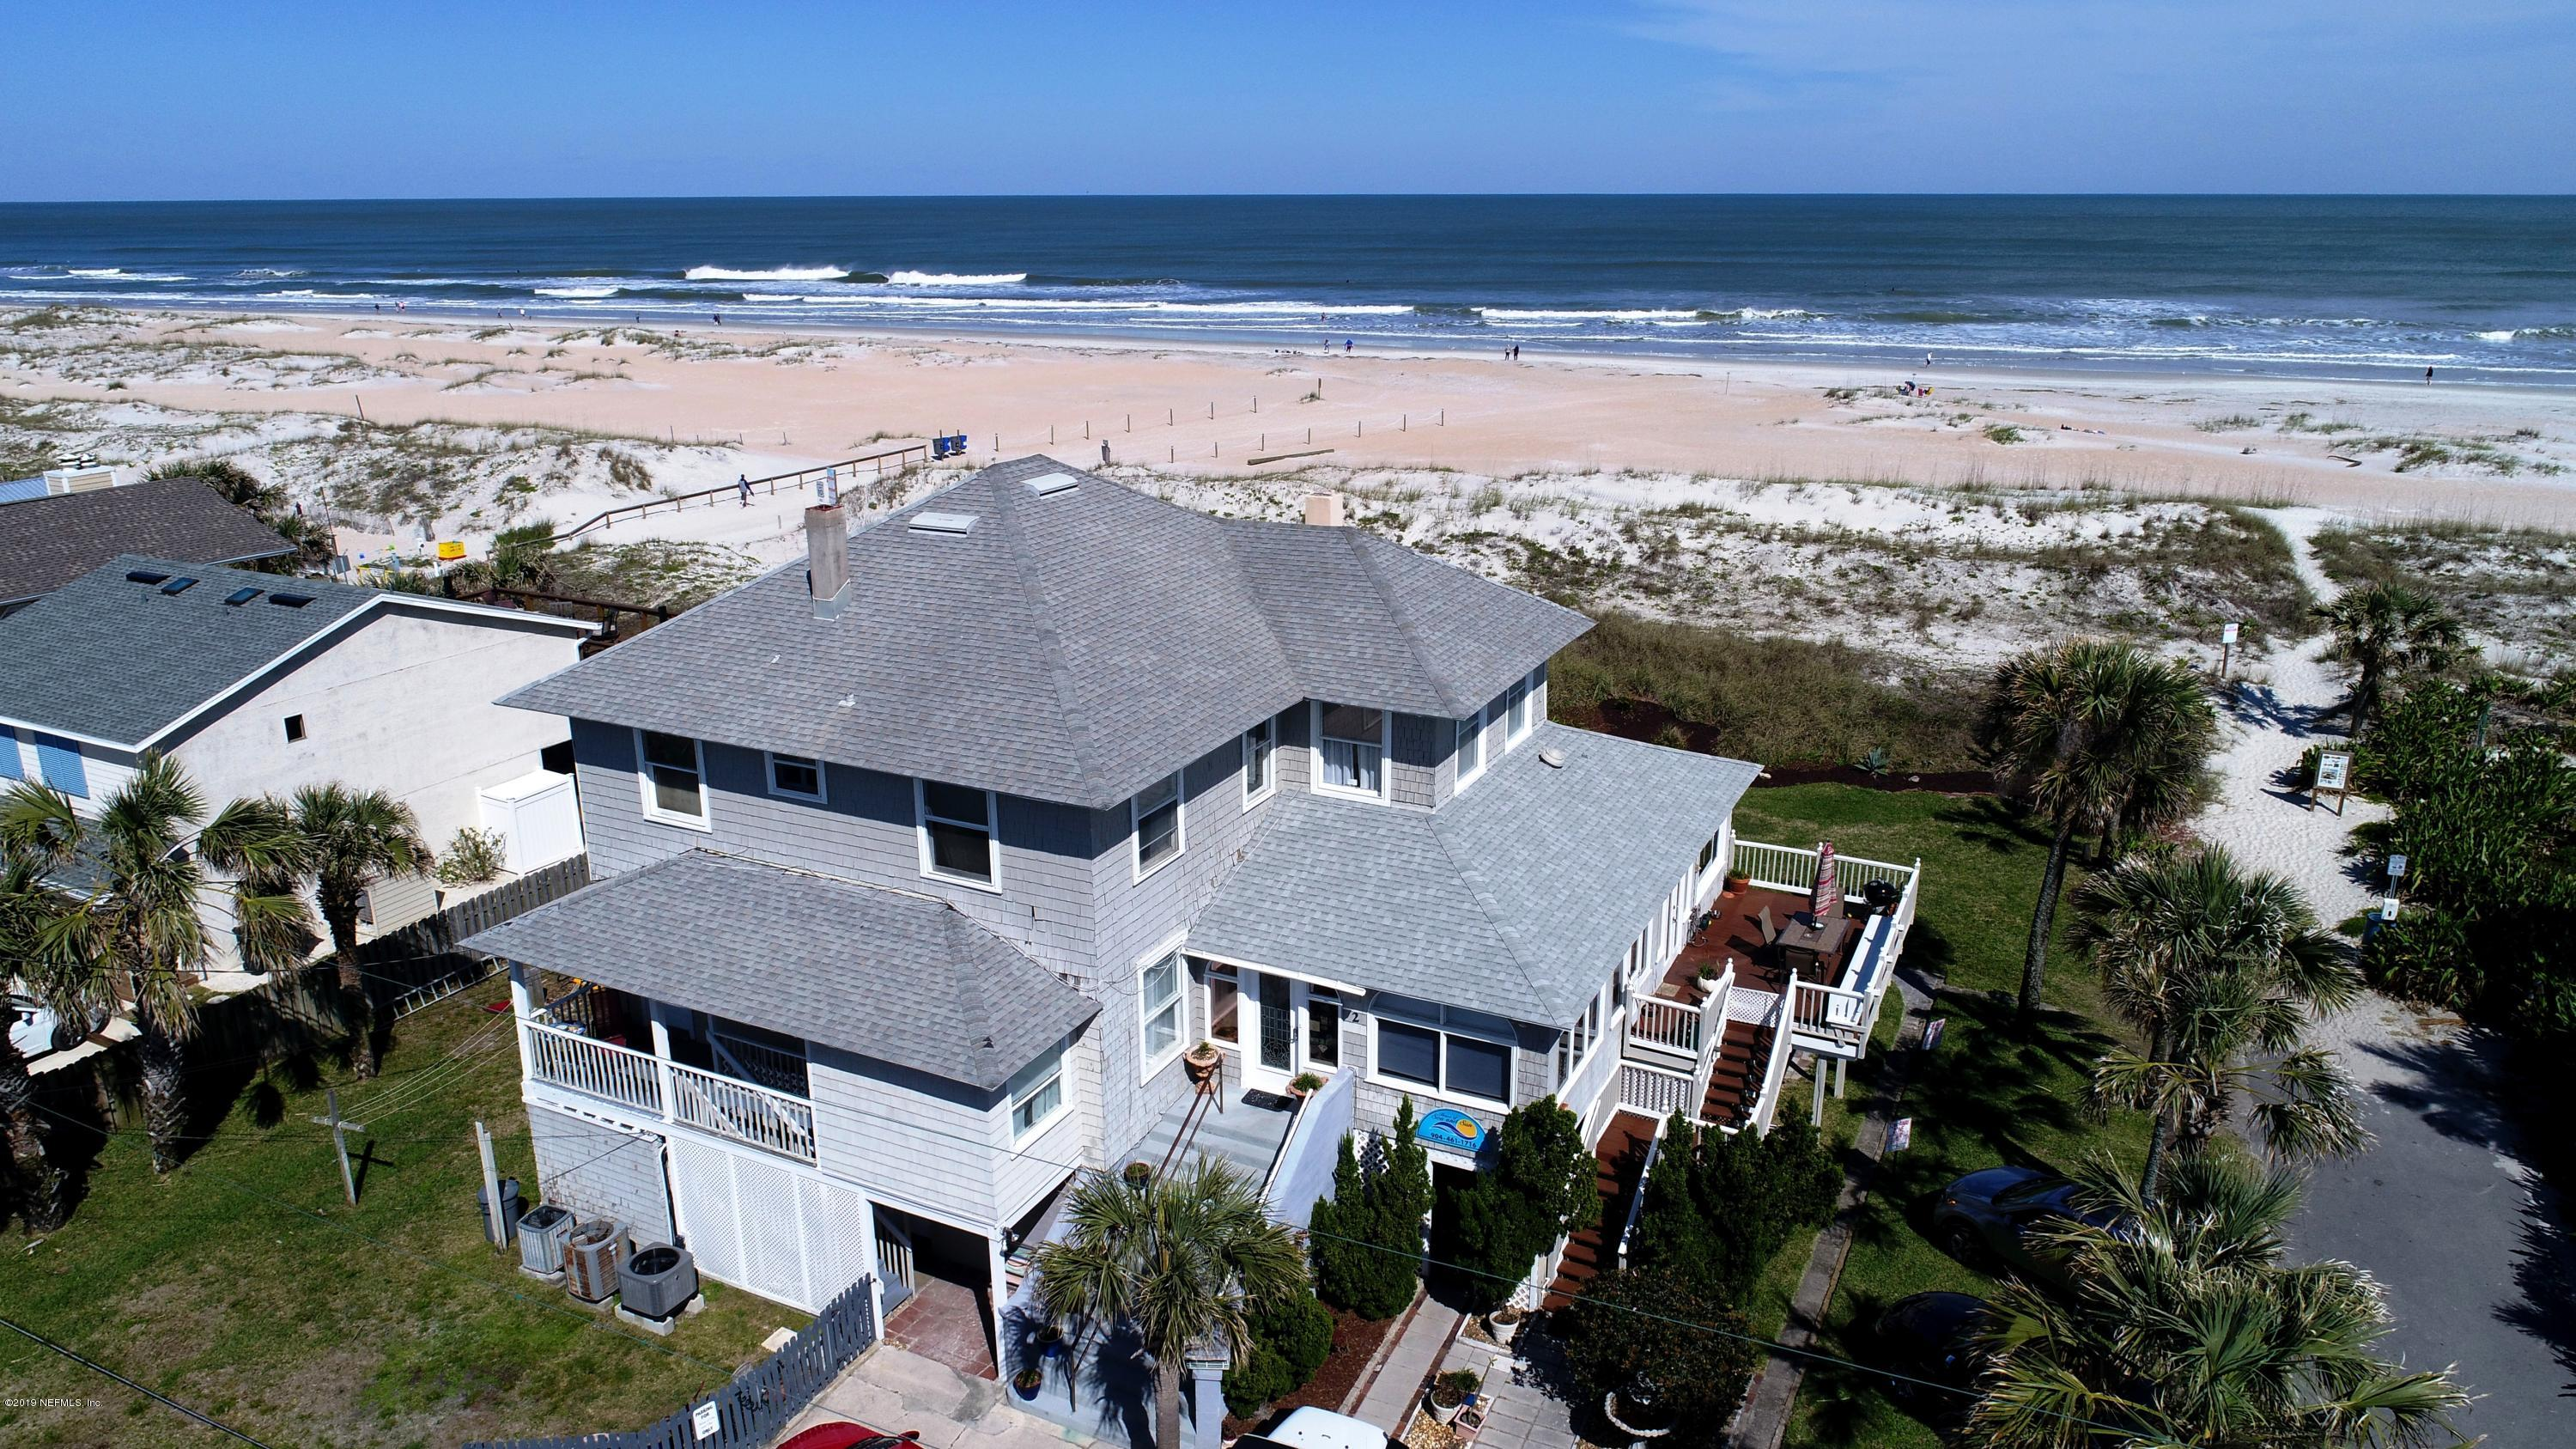 2 B, ST AUGUSTINE BEACH, FLORIDA 32080, 8 Bedrooms Bedrooms, ,8 BathroomsBathrooms,Single family,For sale,B,989924